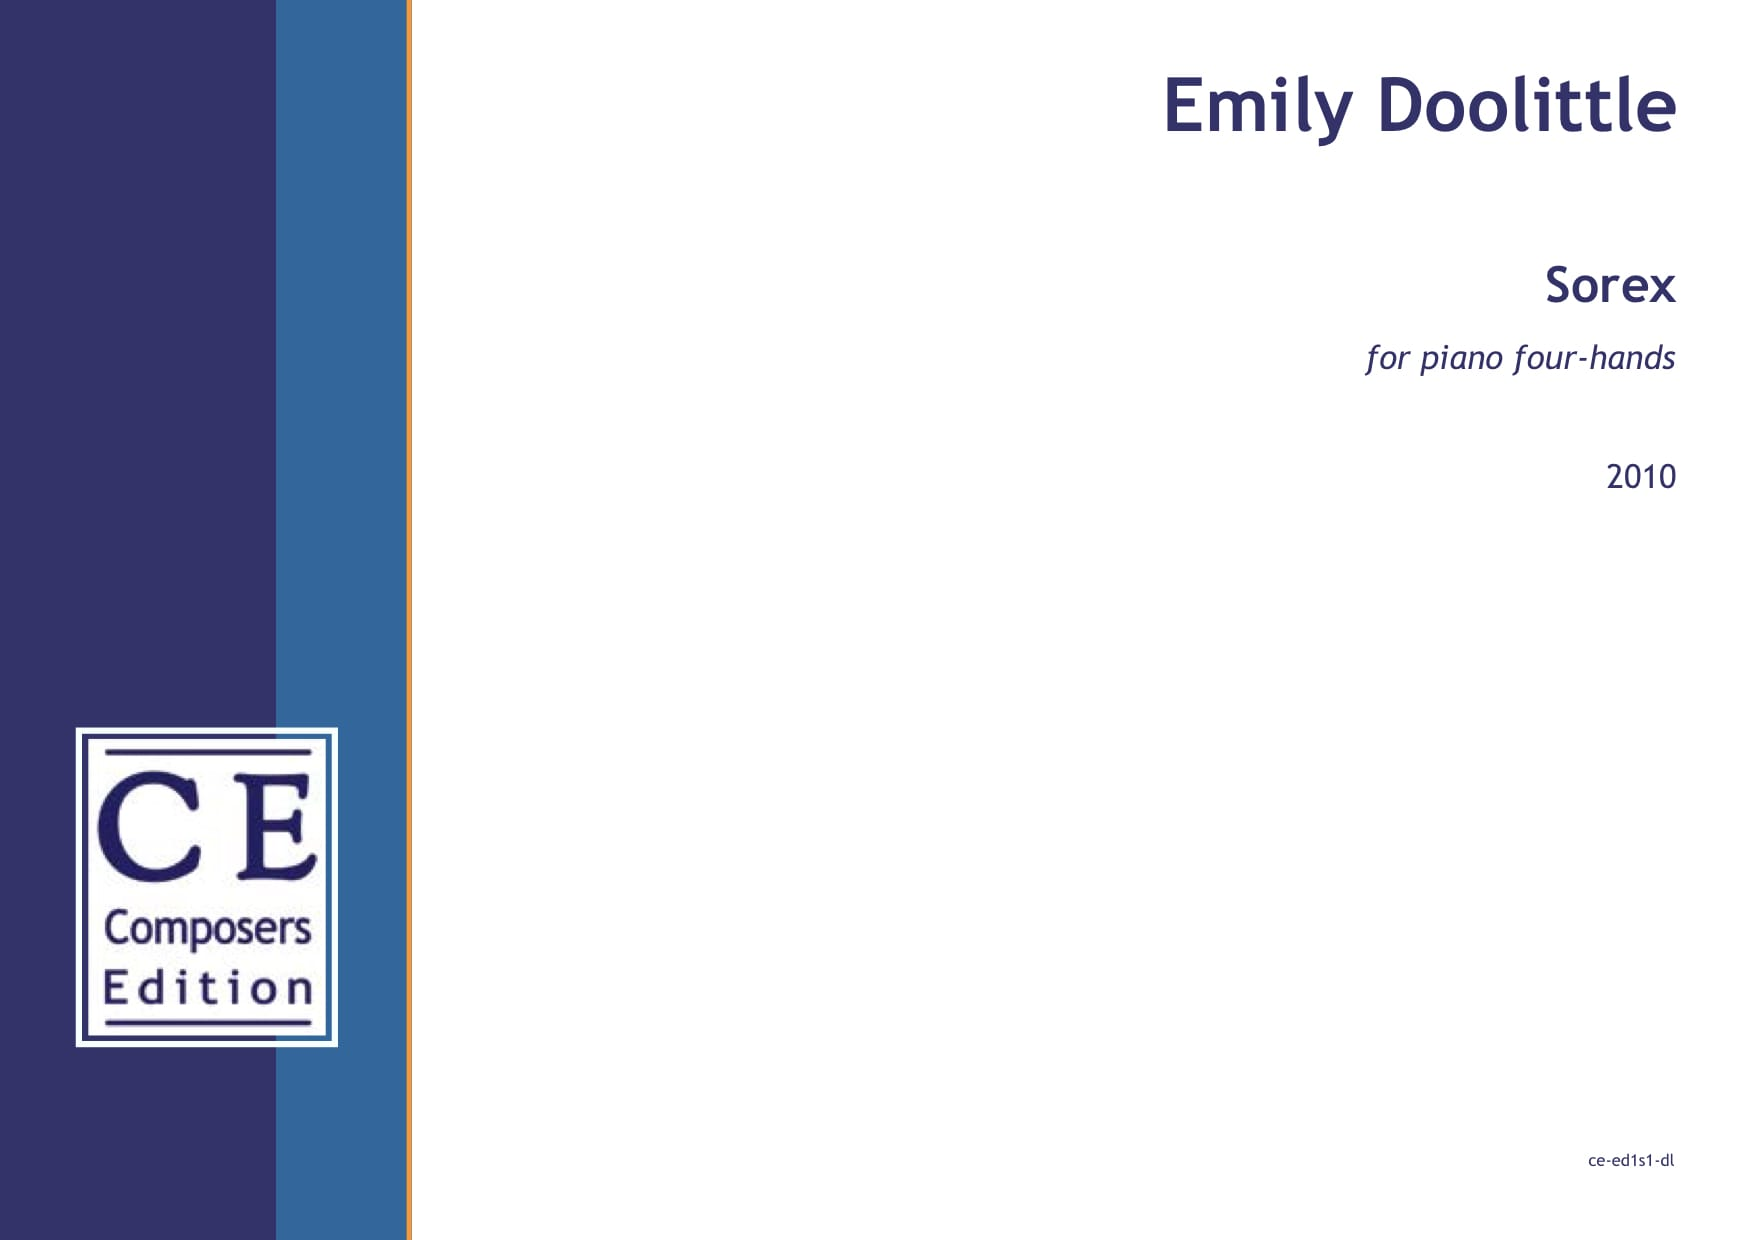 Emily Doolittle: Sorex for piano four-hands